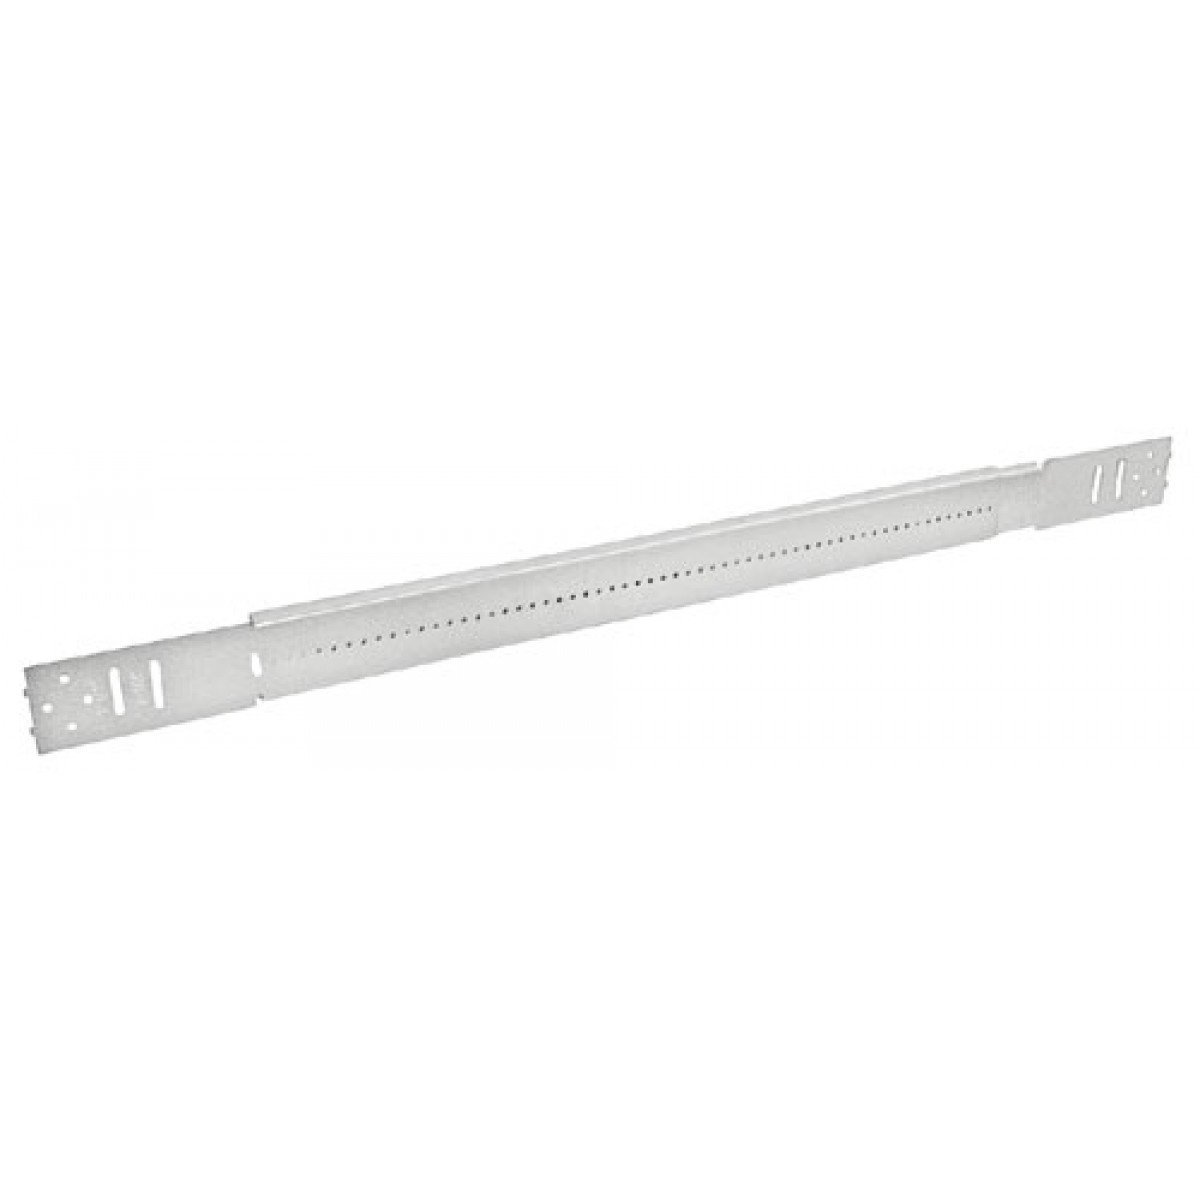 2 Pcs, Adjustable Length Box Bar Hanger, 11 to 18 In, Galvanized Steel Allow Electrical Boxes to Be Quickly & Easily Installed Between Ceiling Joists Or Wall Studs